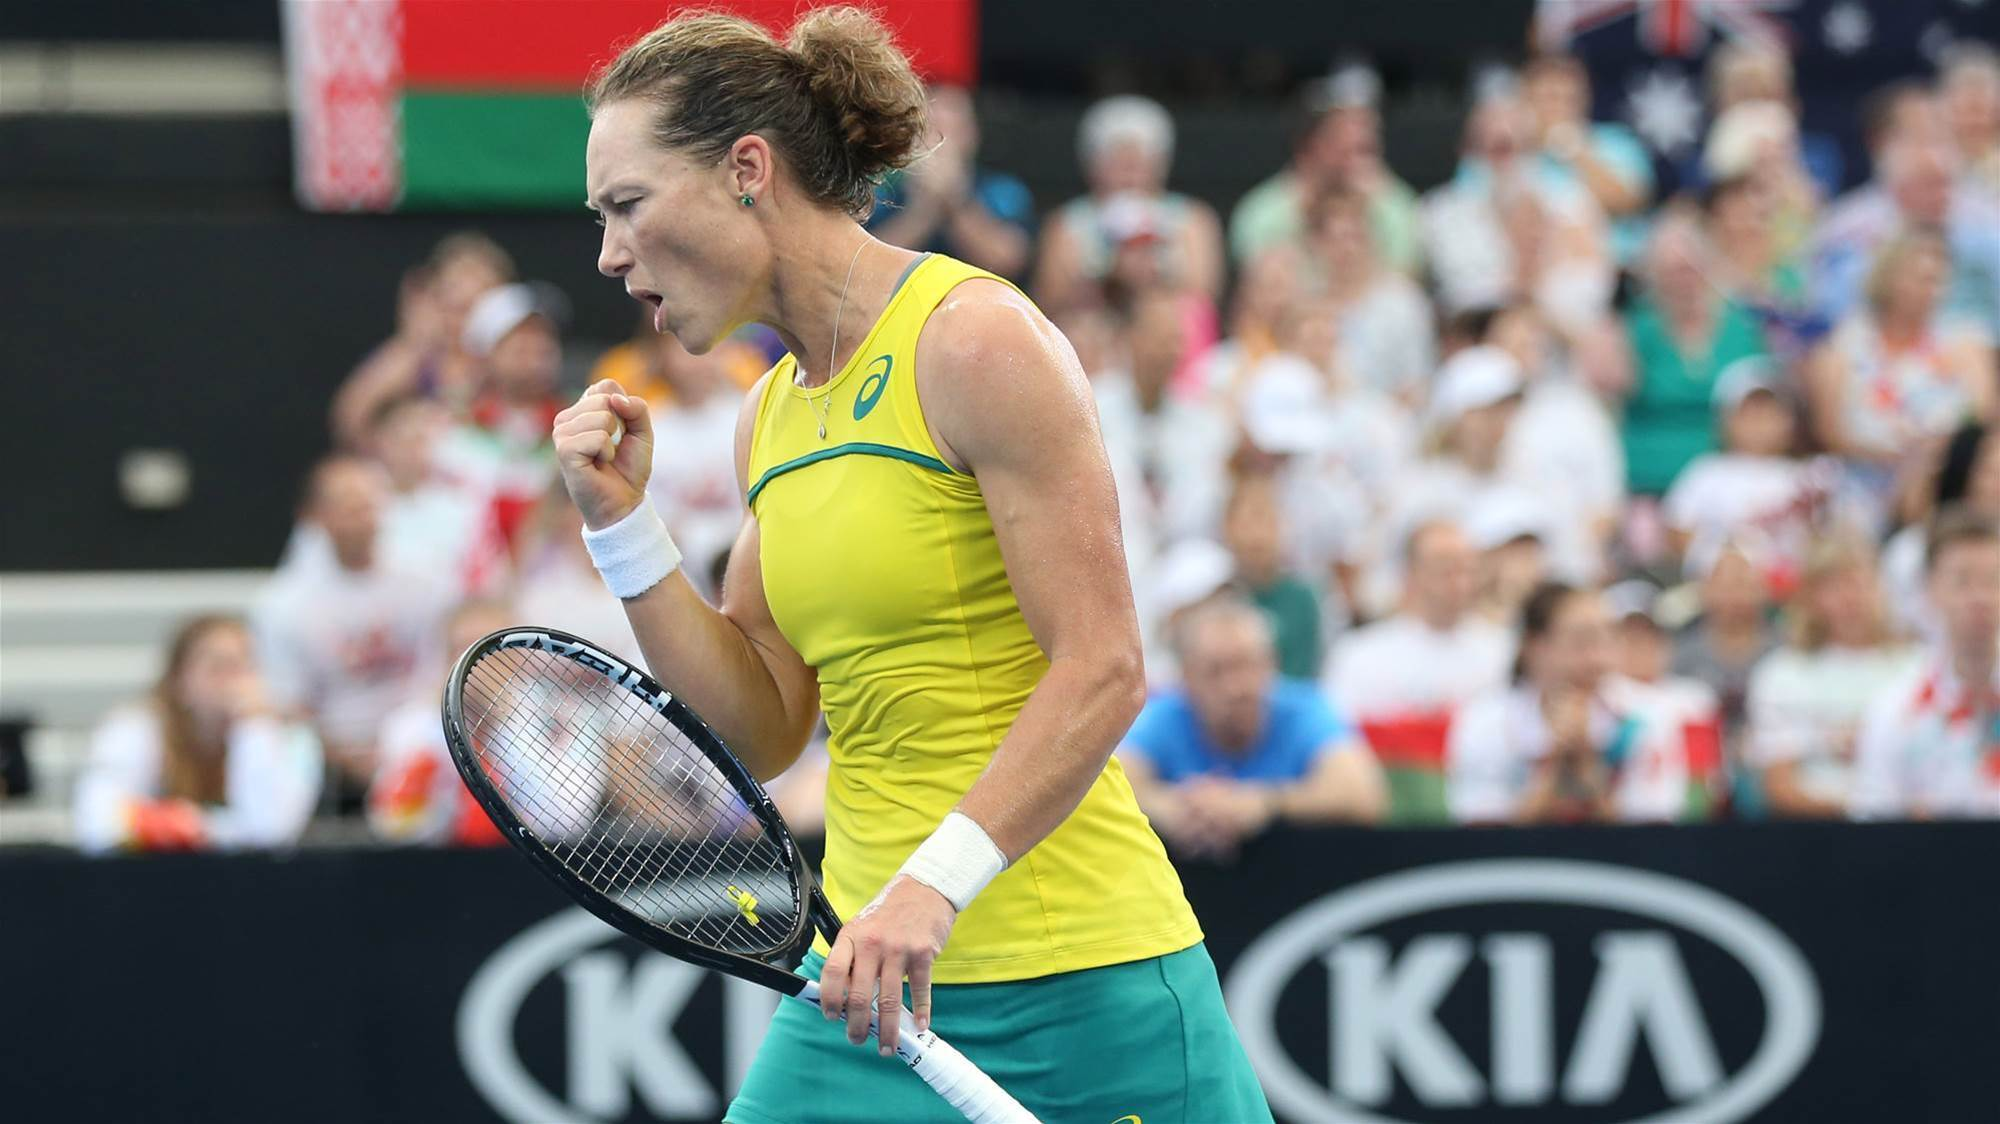 Stosur's never give up attitude